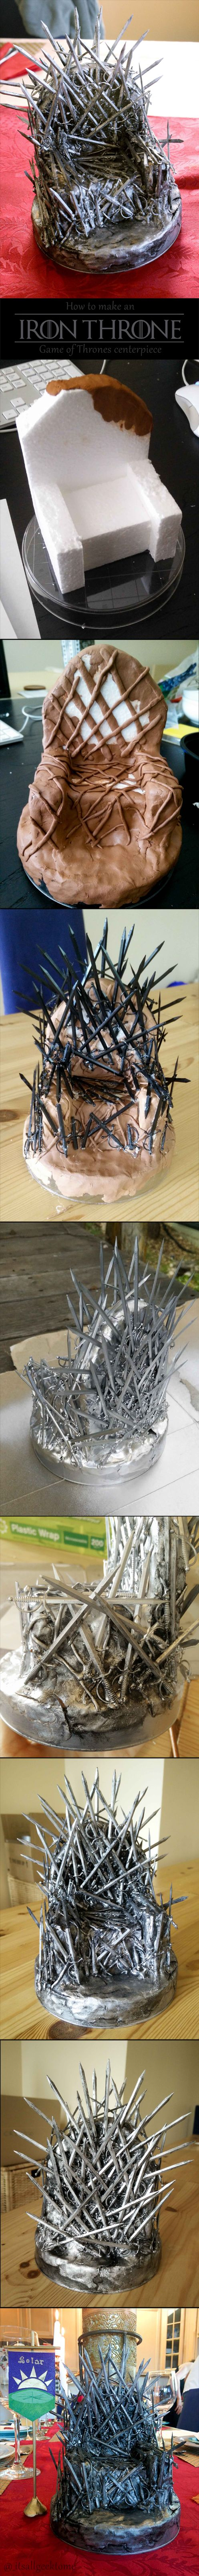 DIY Iron Throne Instructions - Centerpiece for a Game of Thrones party